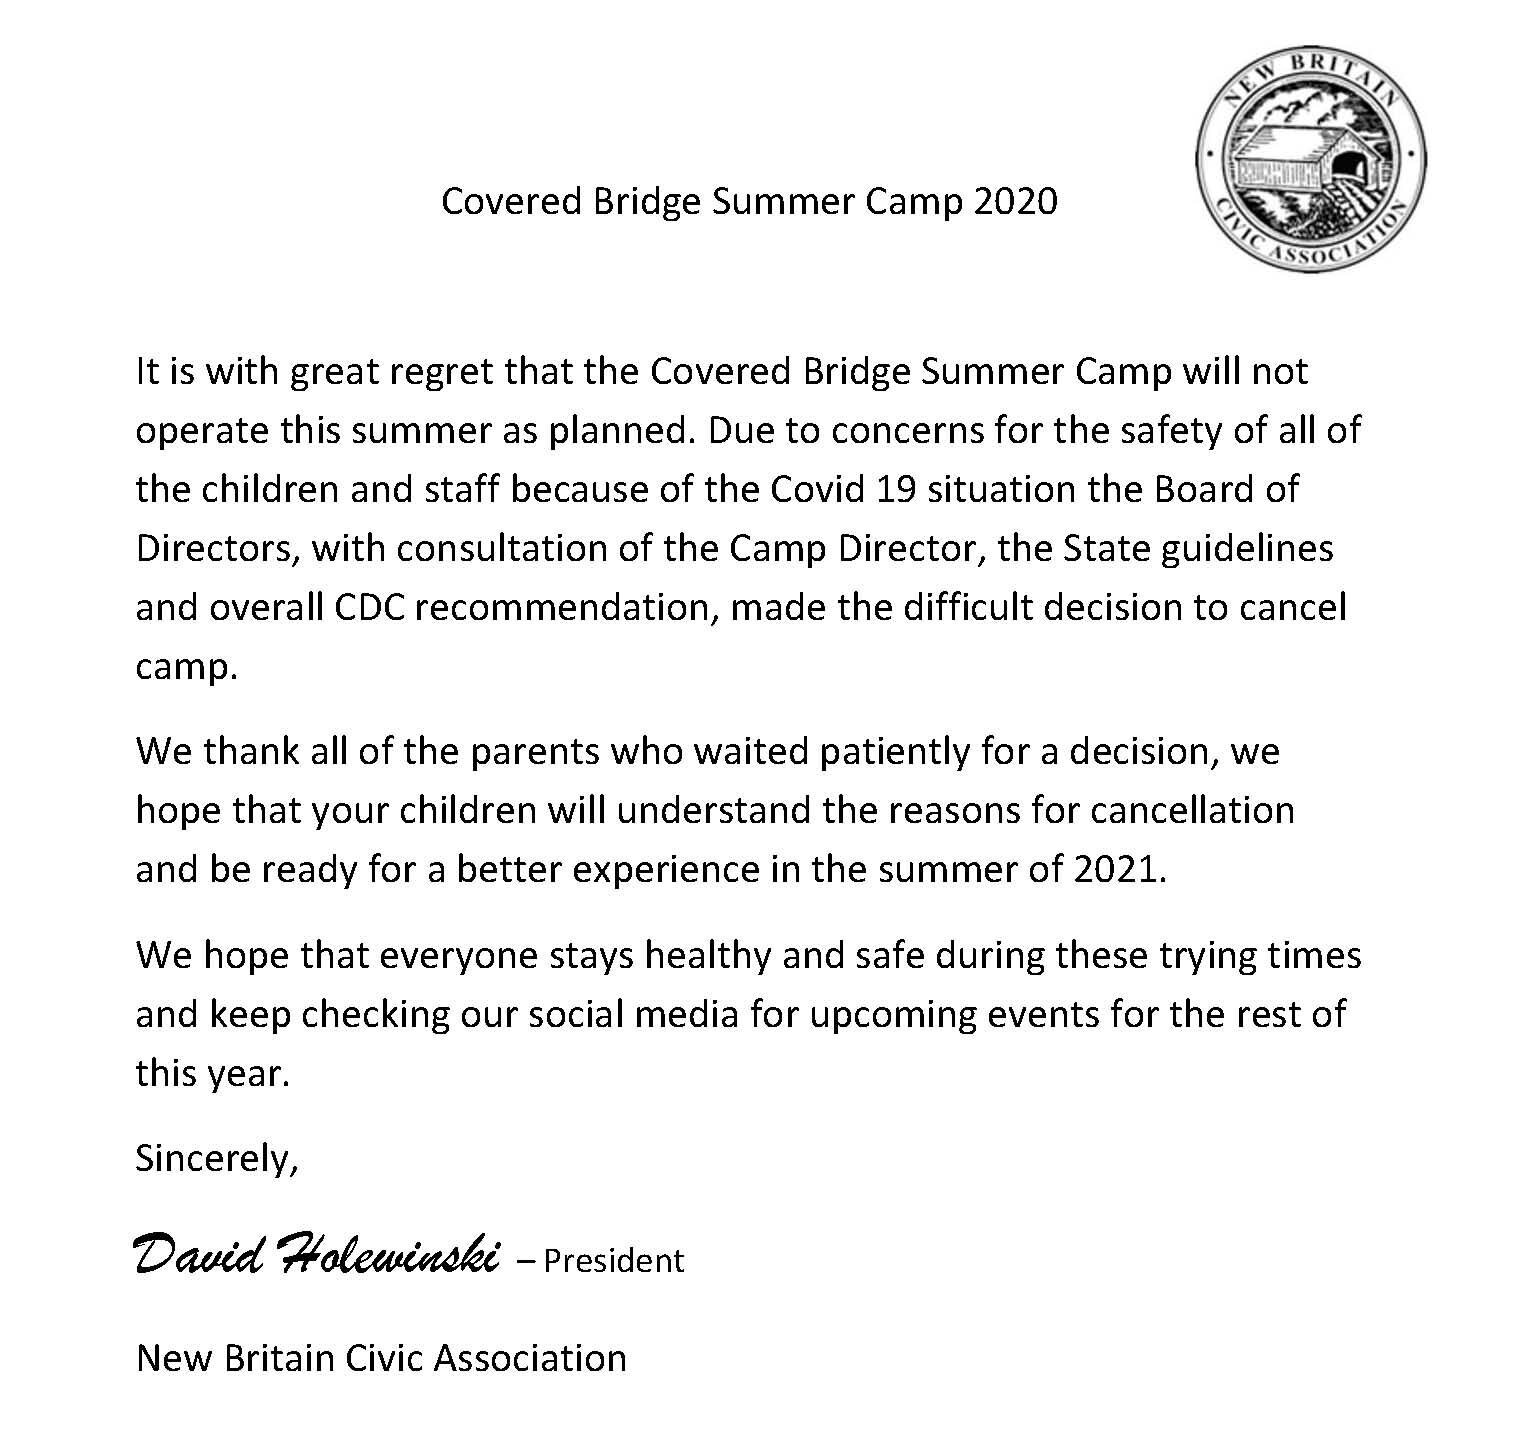 summer camp 2020 cancelled